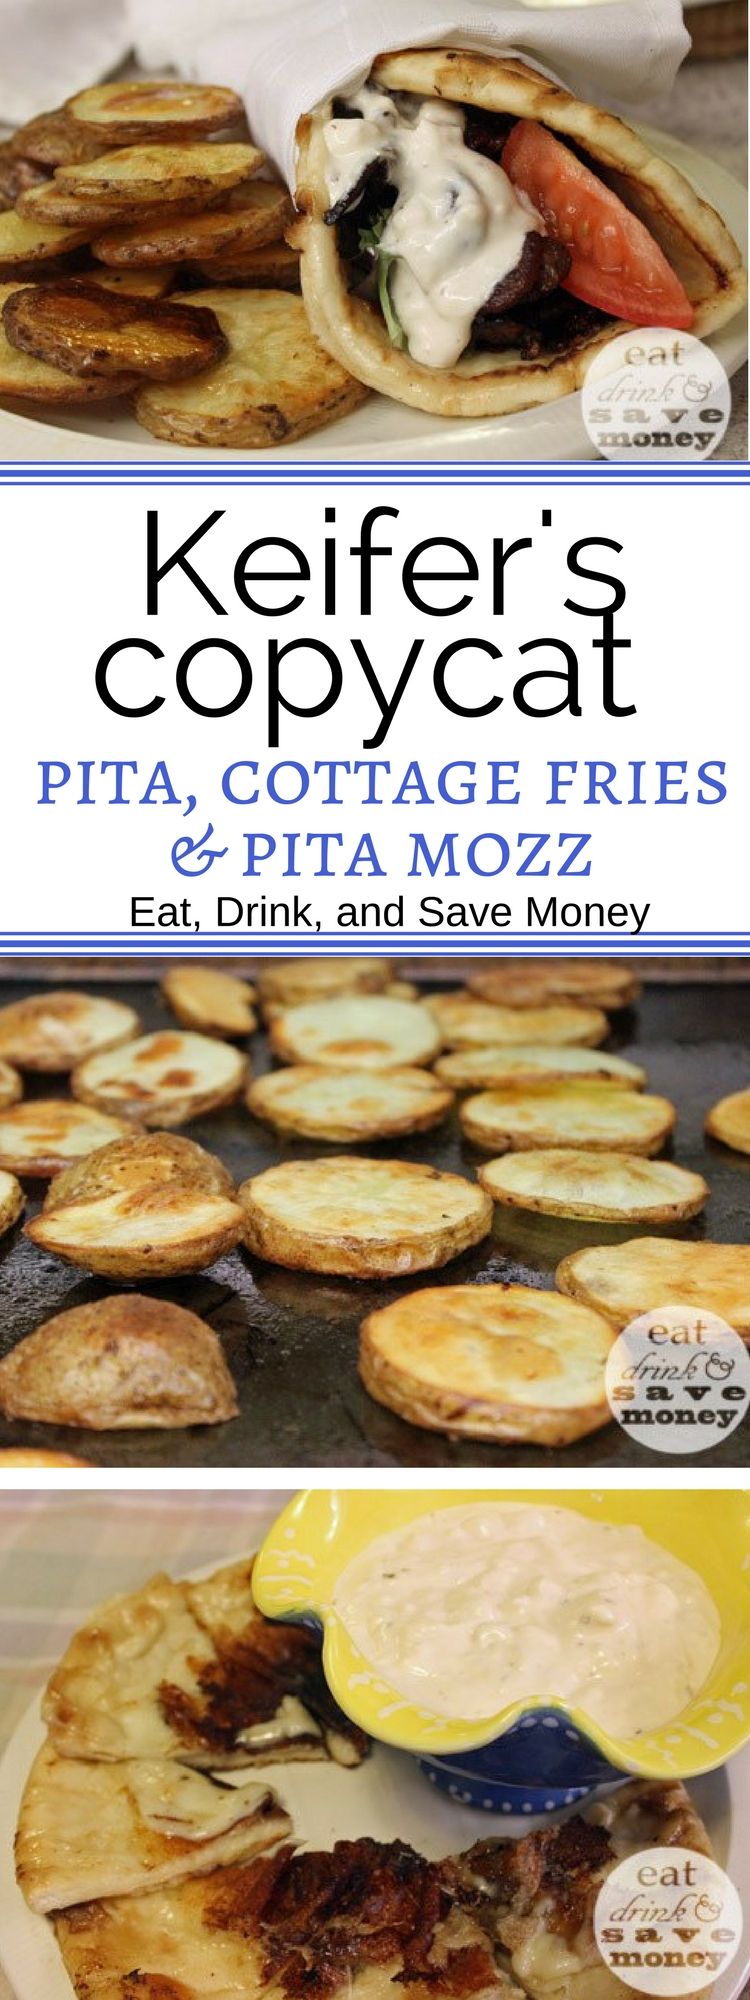 Keifer's copycat recipes from Jackson, MS. BLT pita recipe, cottage fries recipe, and pita mozz recipe.-2